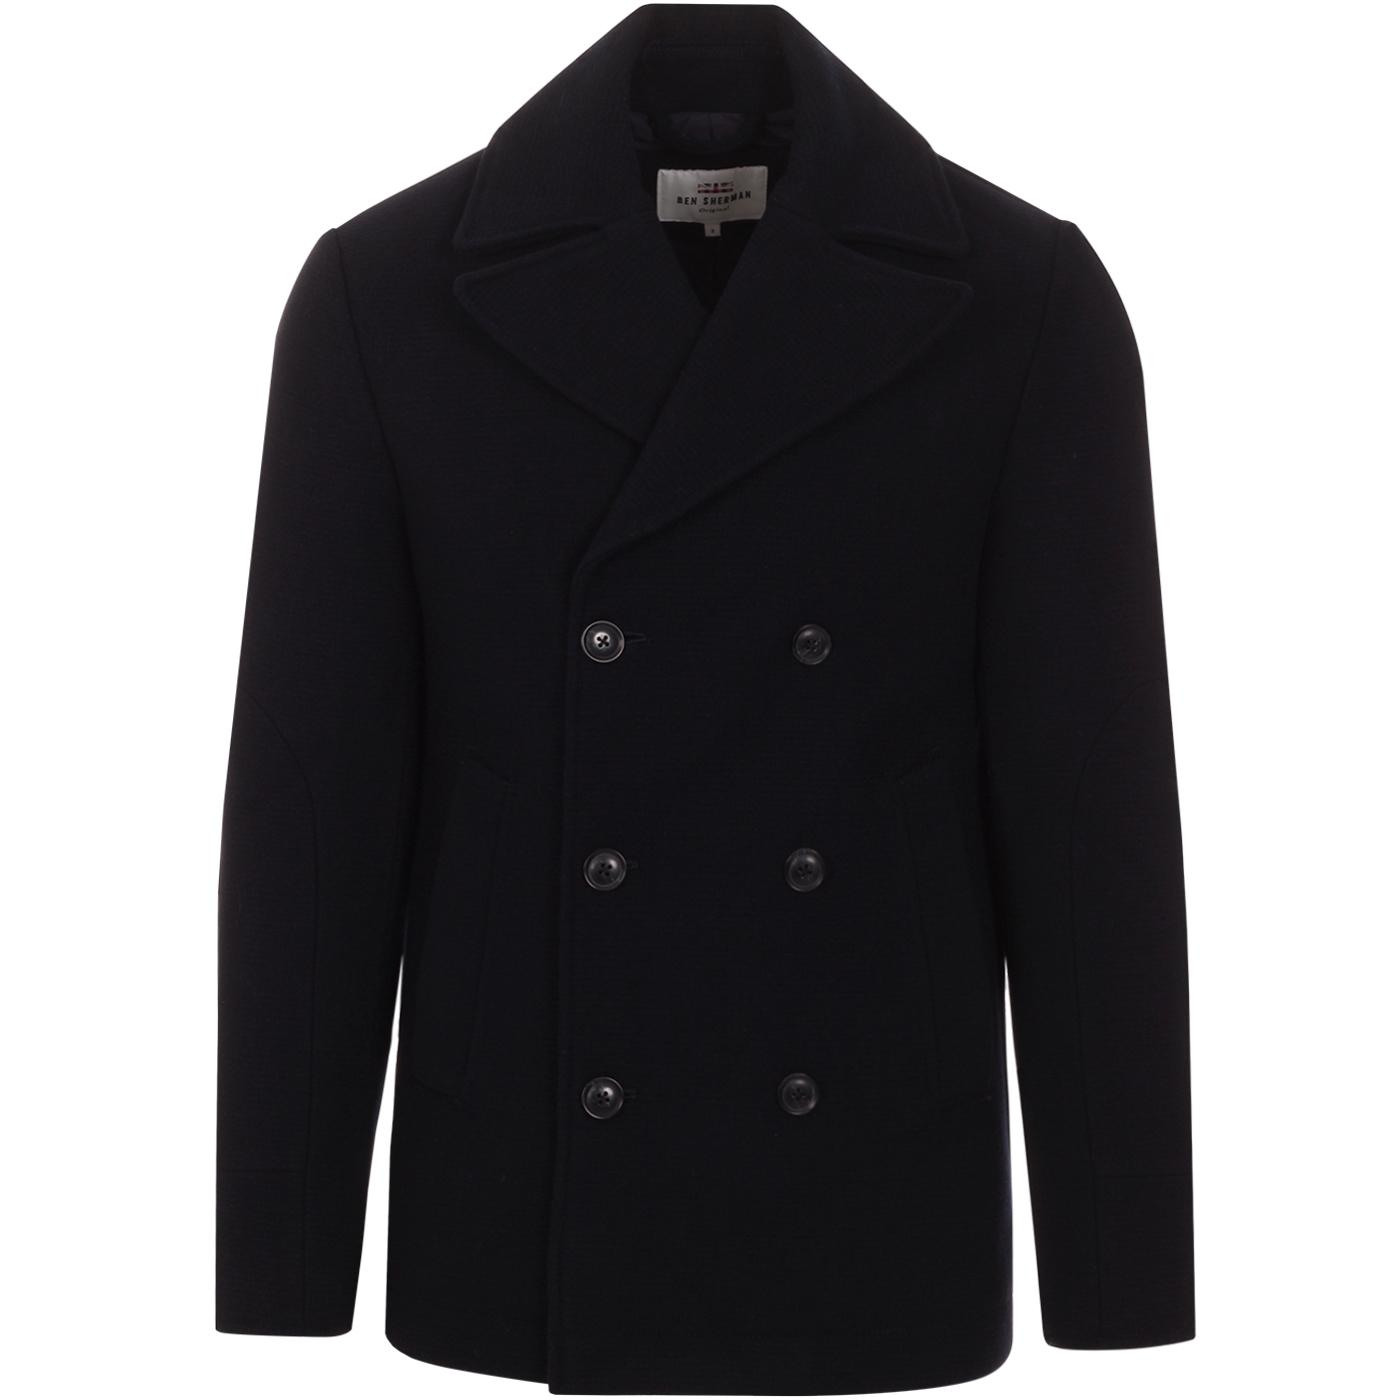 BEN SHERMAN Retro Mod Ribbed Melton Peacoat (M)